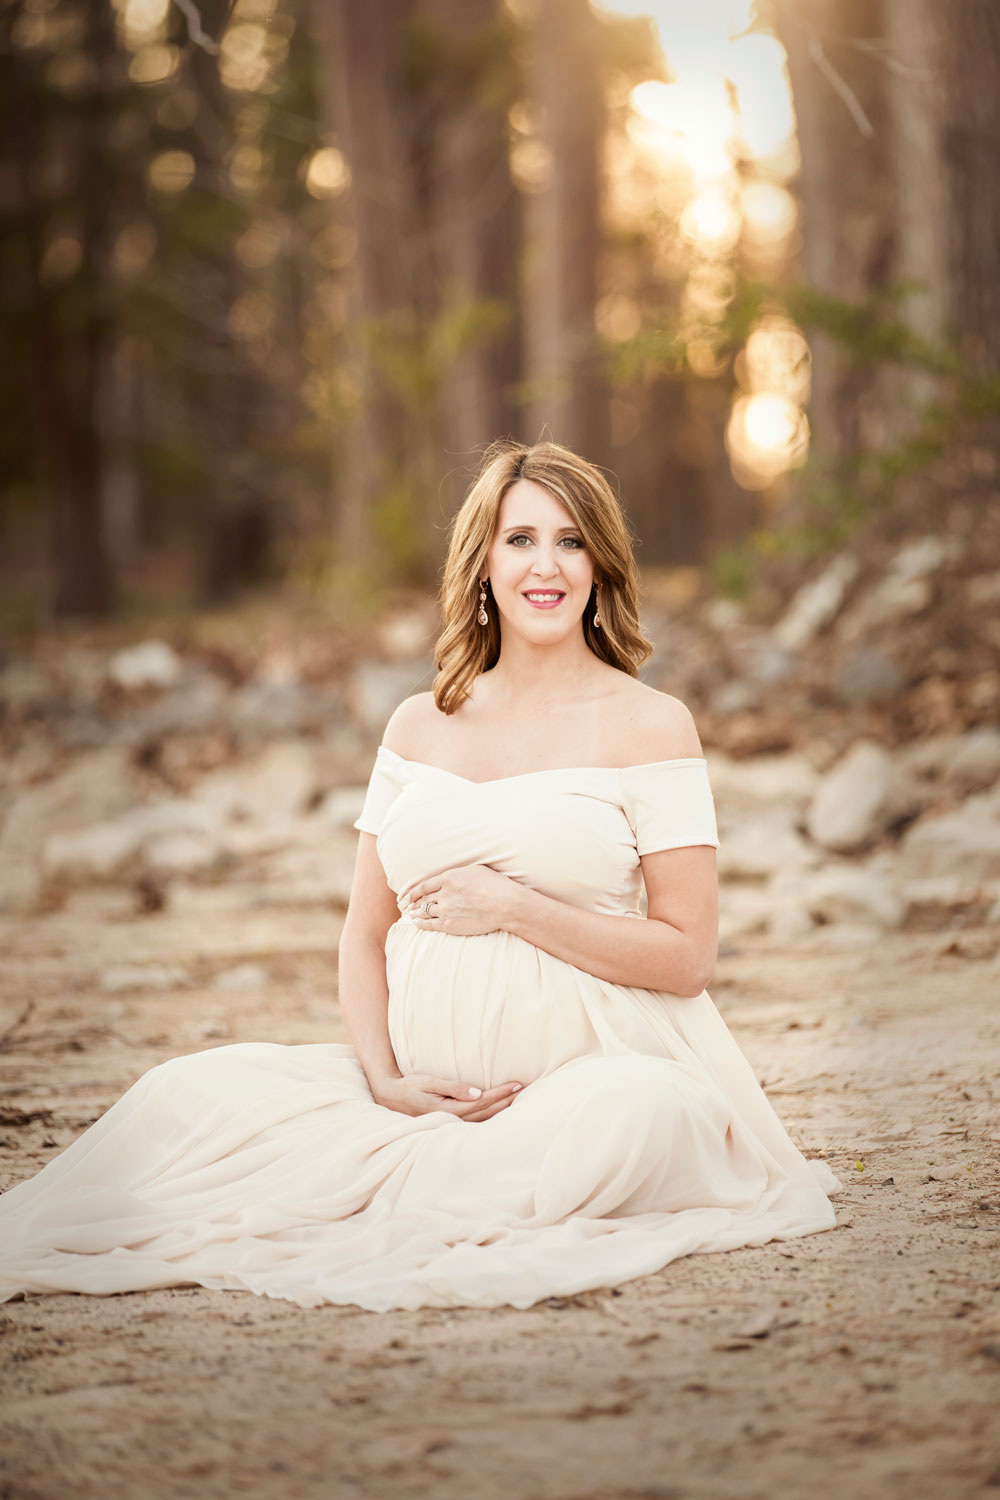 Sunset maternity portrait in chiffon maternity gown.